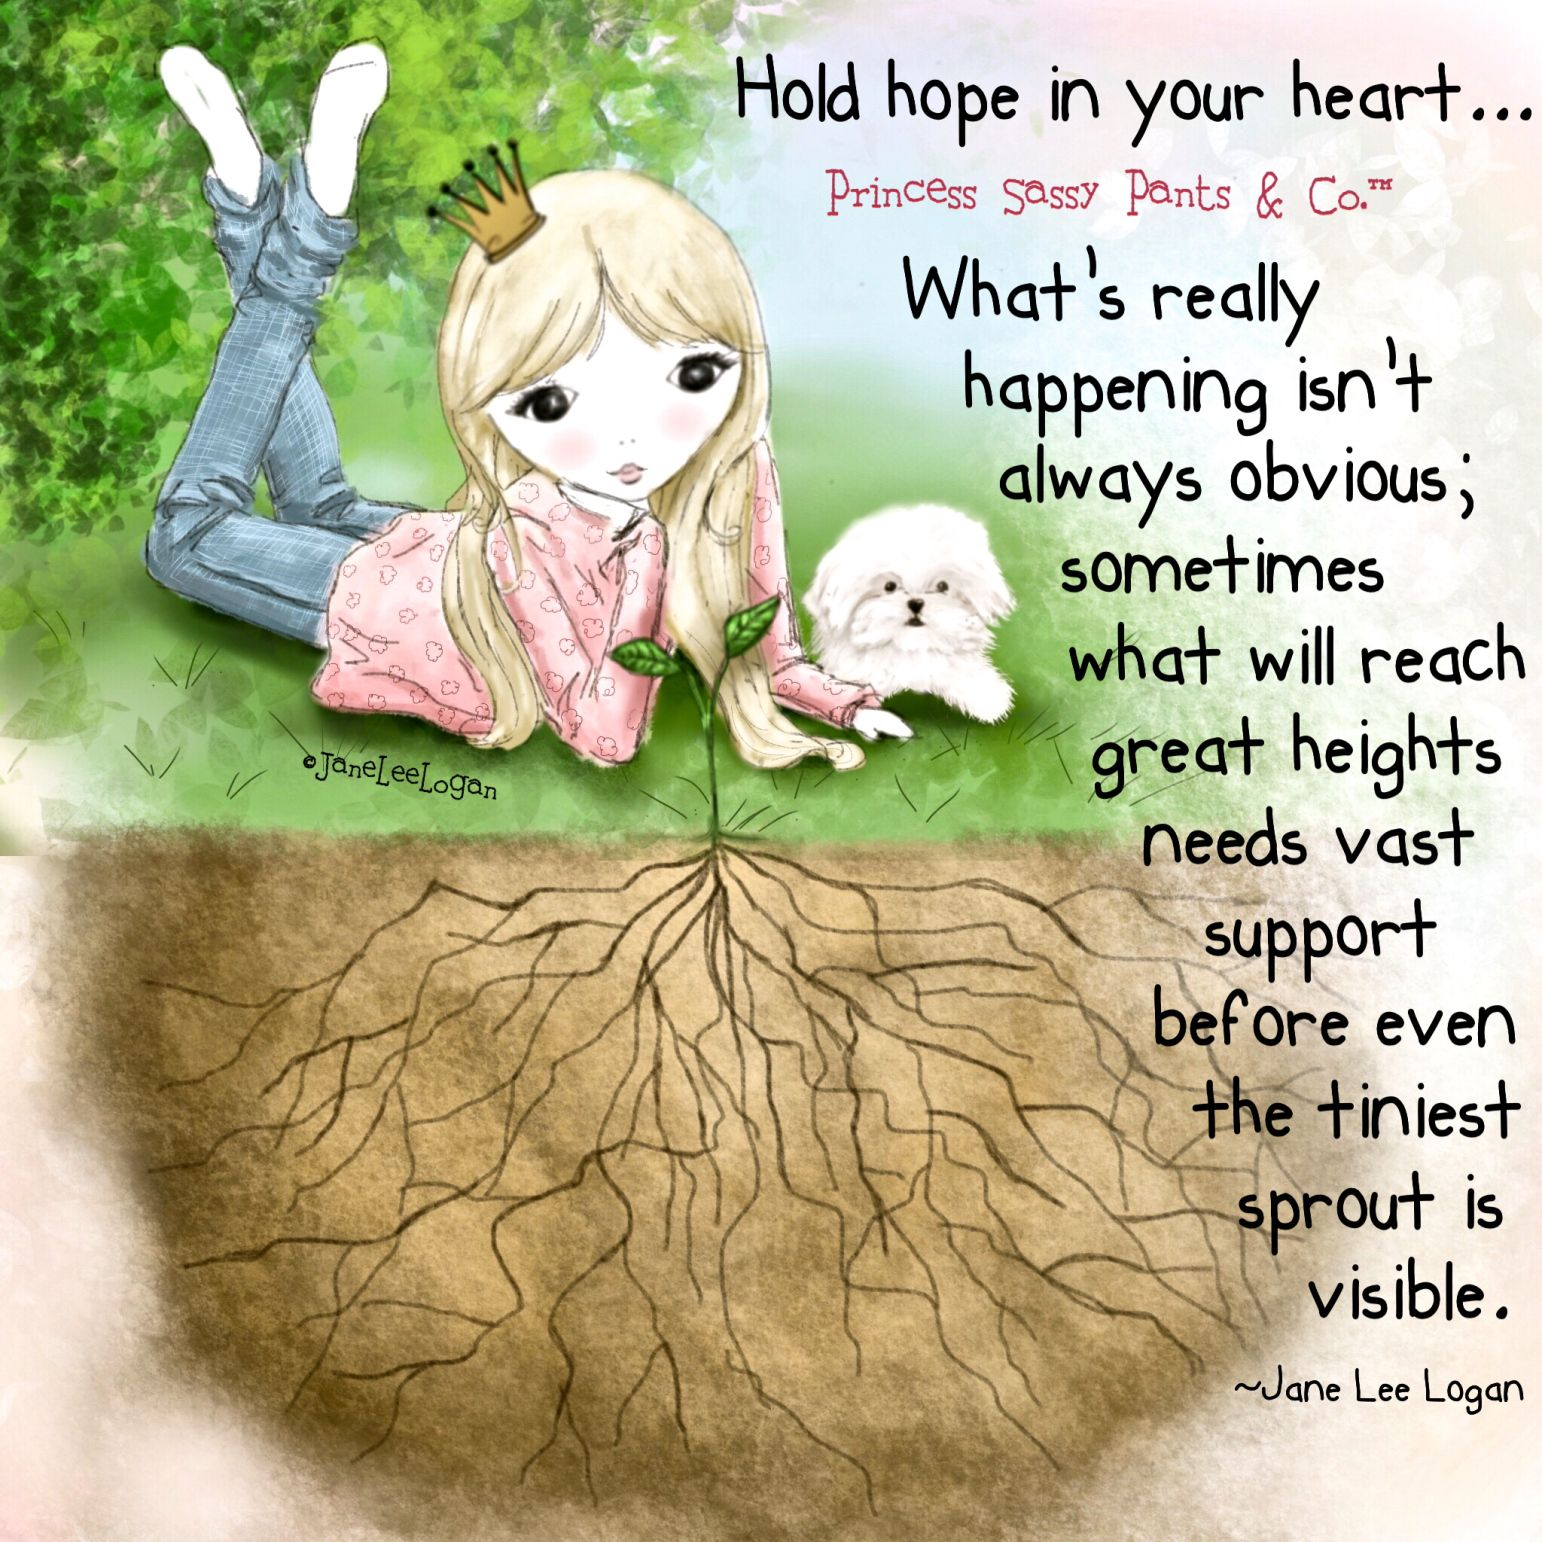 Hold hope in your heart... ~ Princess Sassy Pants & Co